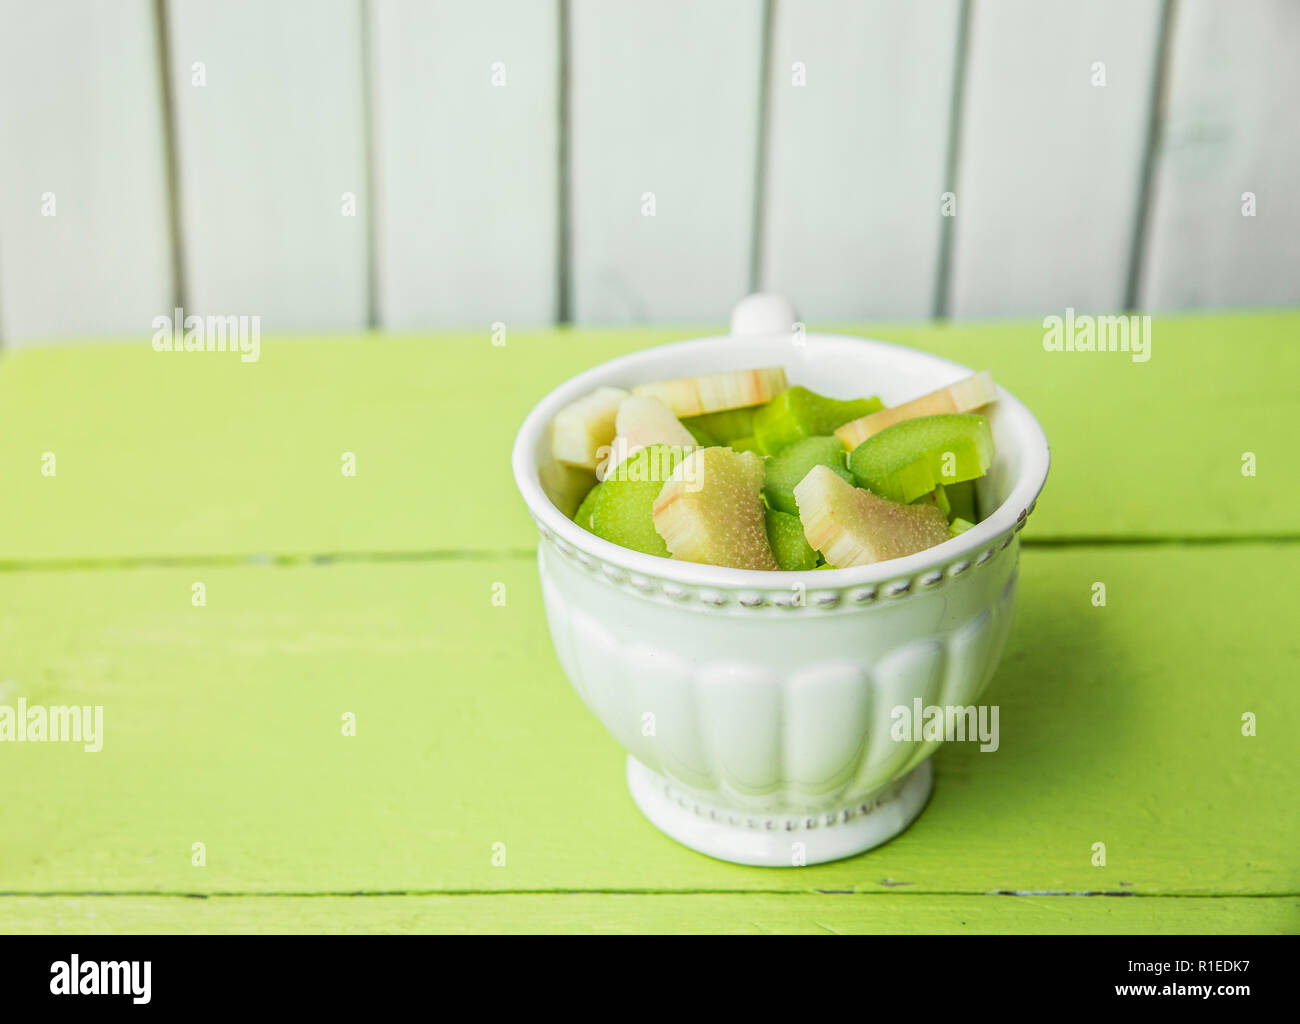 Fresh ripe rhubarb (Rheum rhabarbarum) peeled and cut into pieces in a white vintage cup. Prepared for cooking. Green and white wooden background. - Stock Image